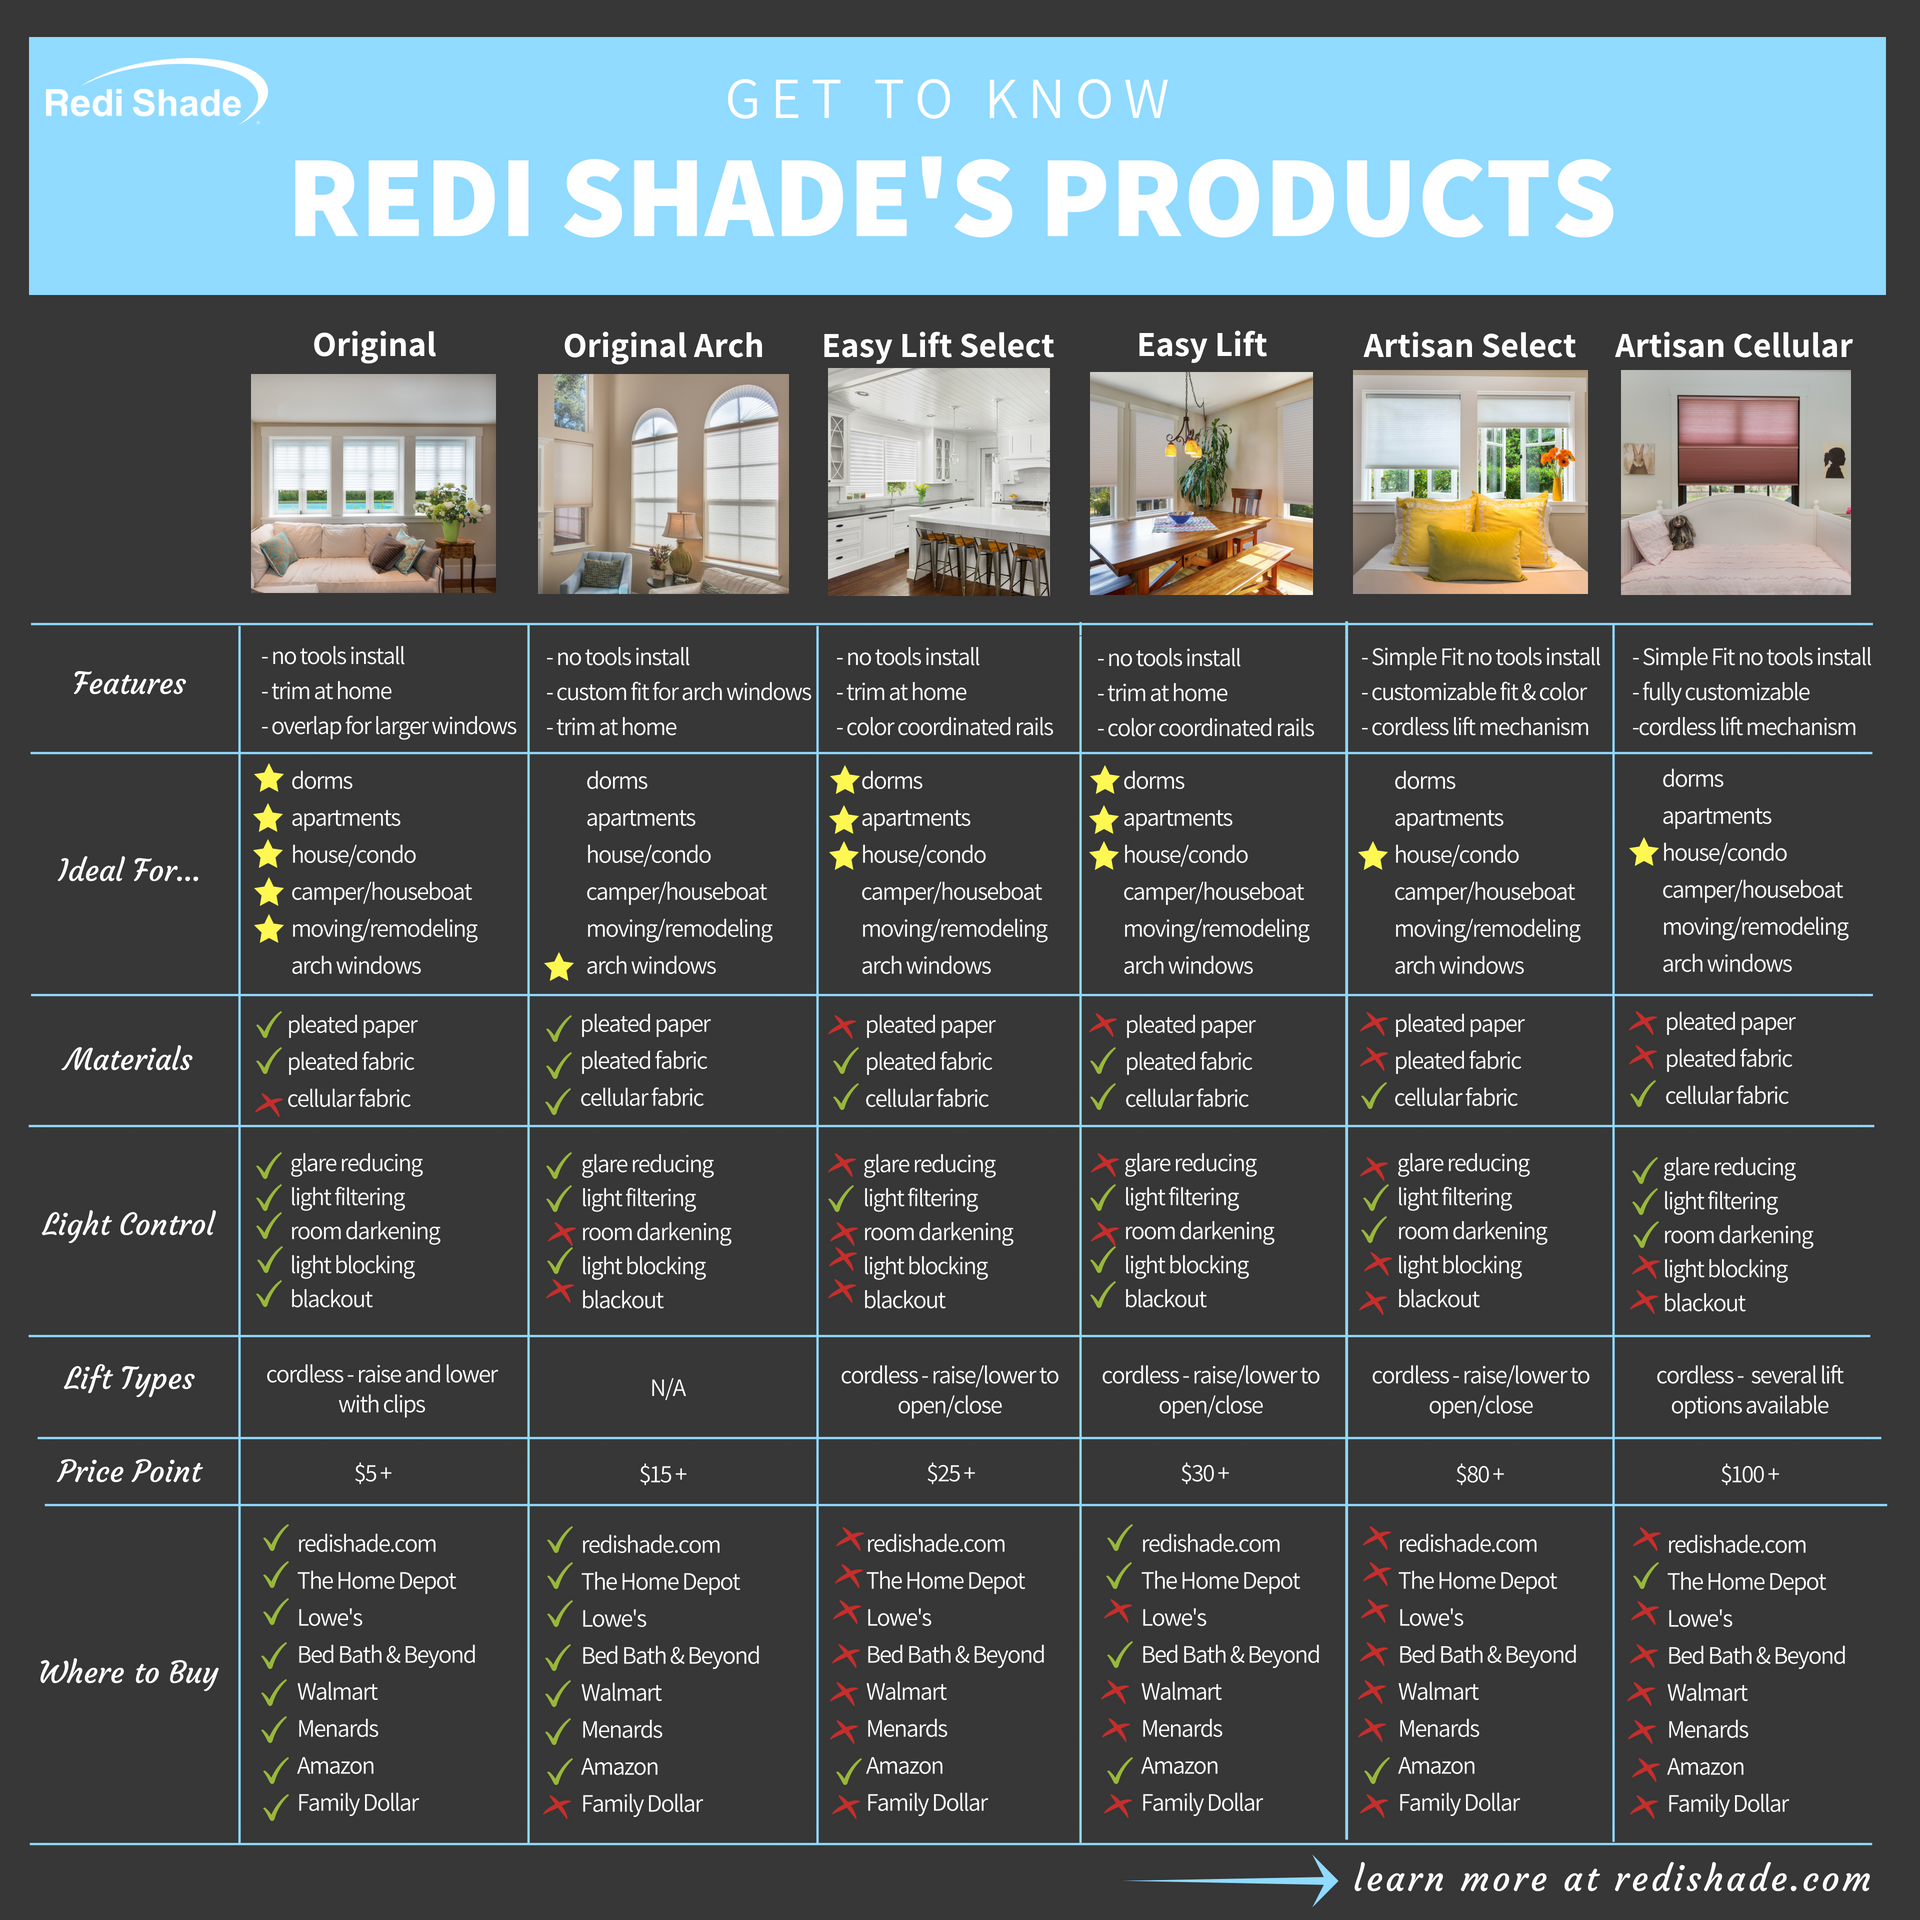 Frequently Asked Questions | Redi Shade on